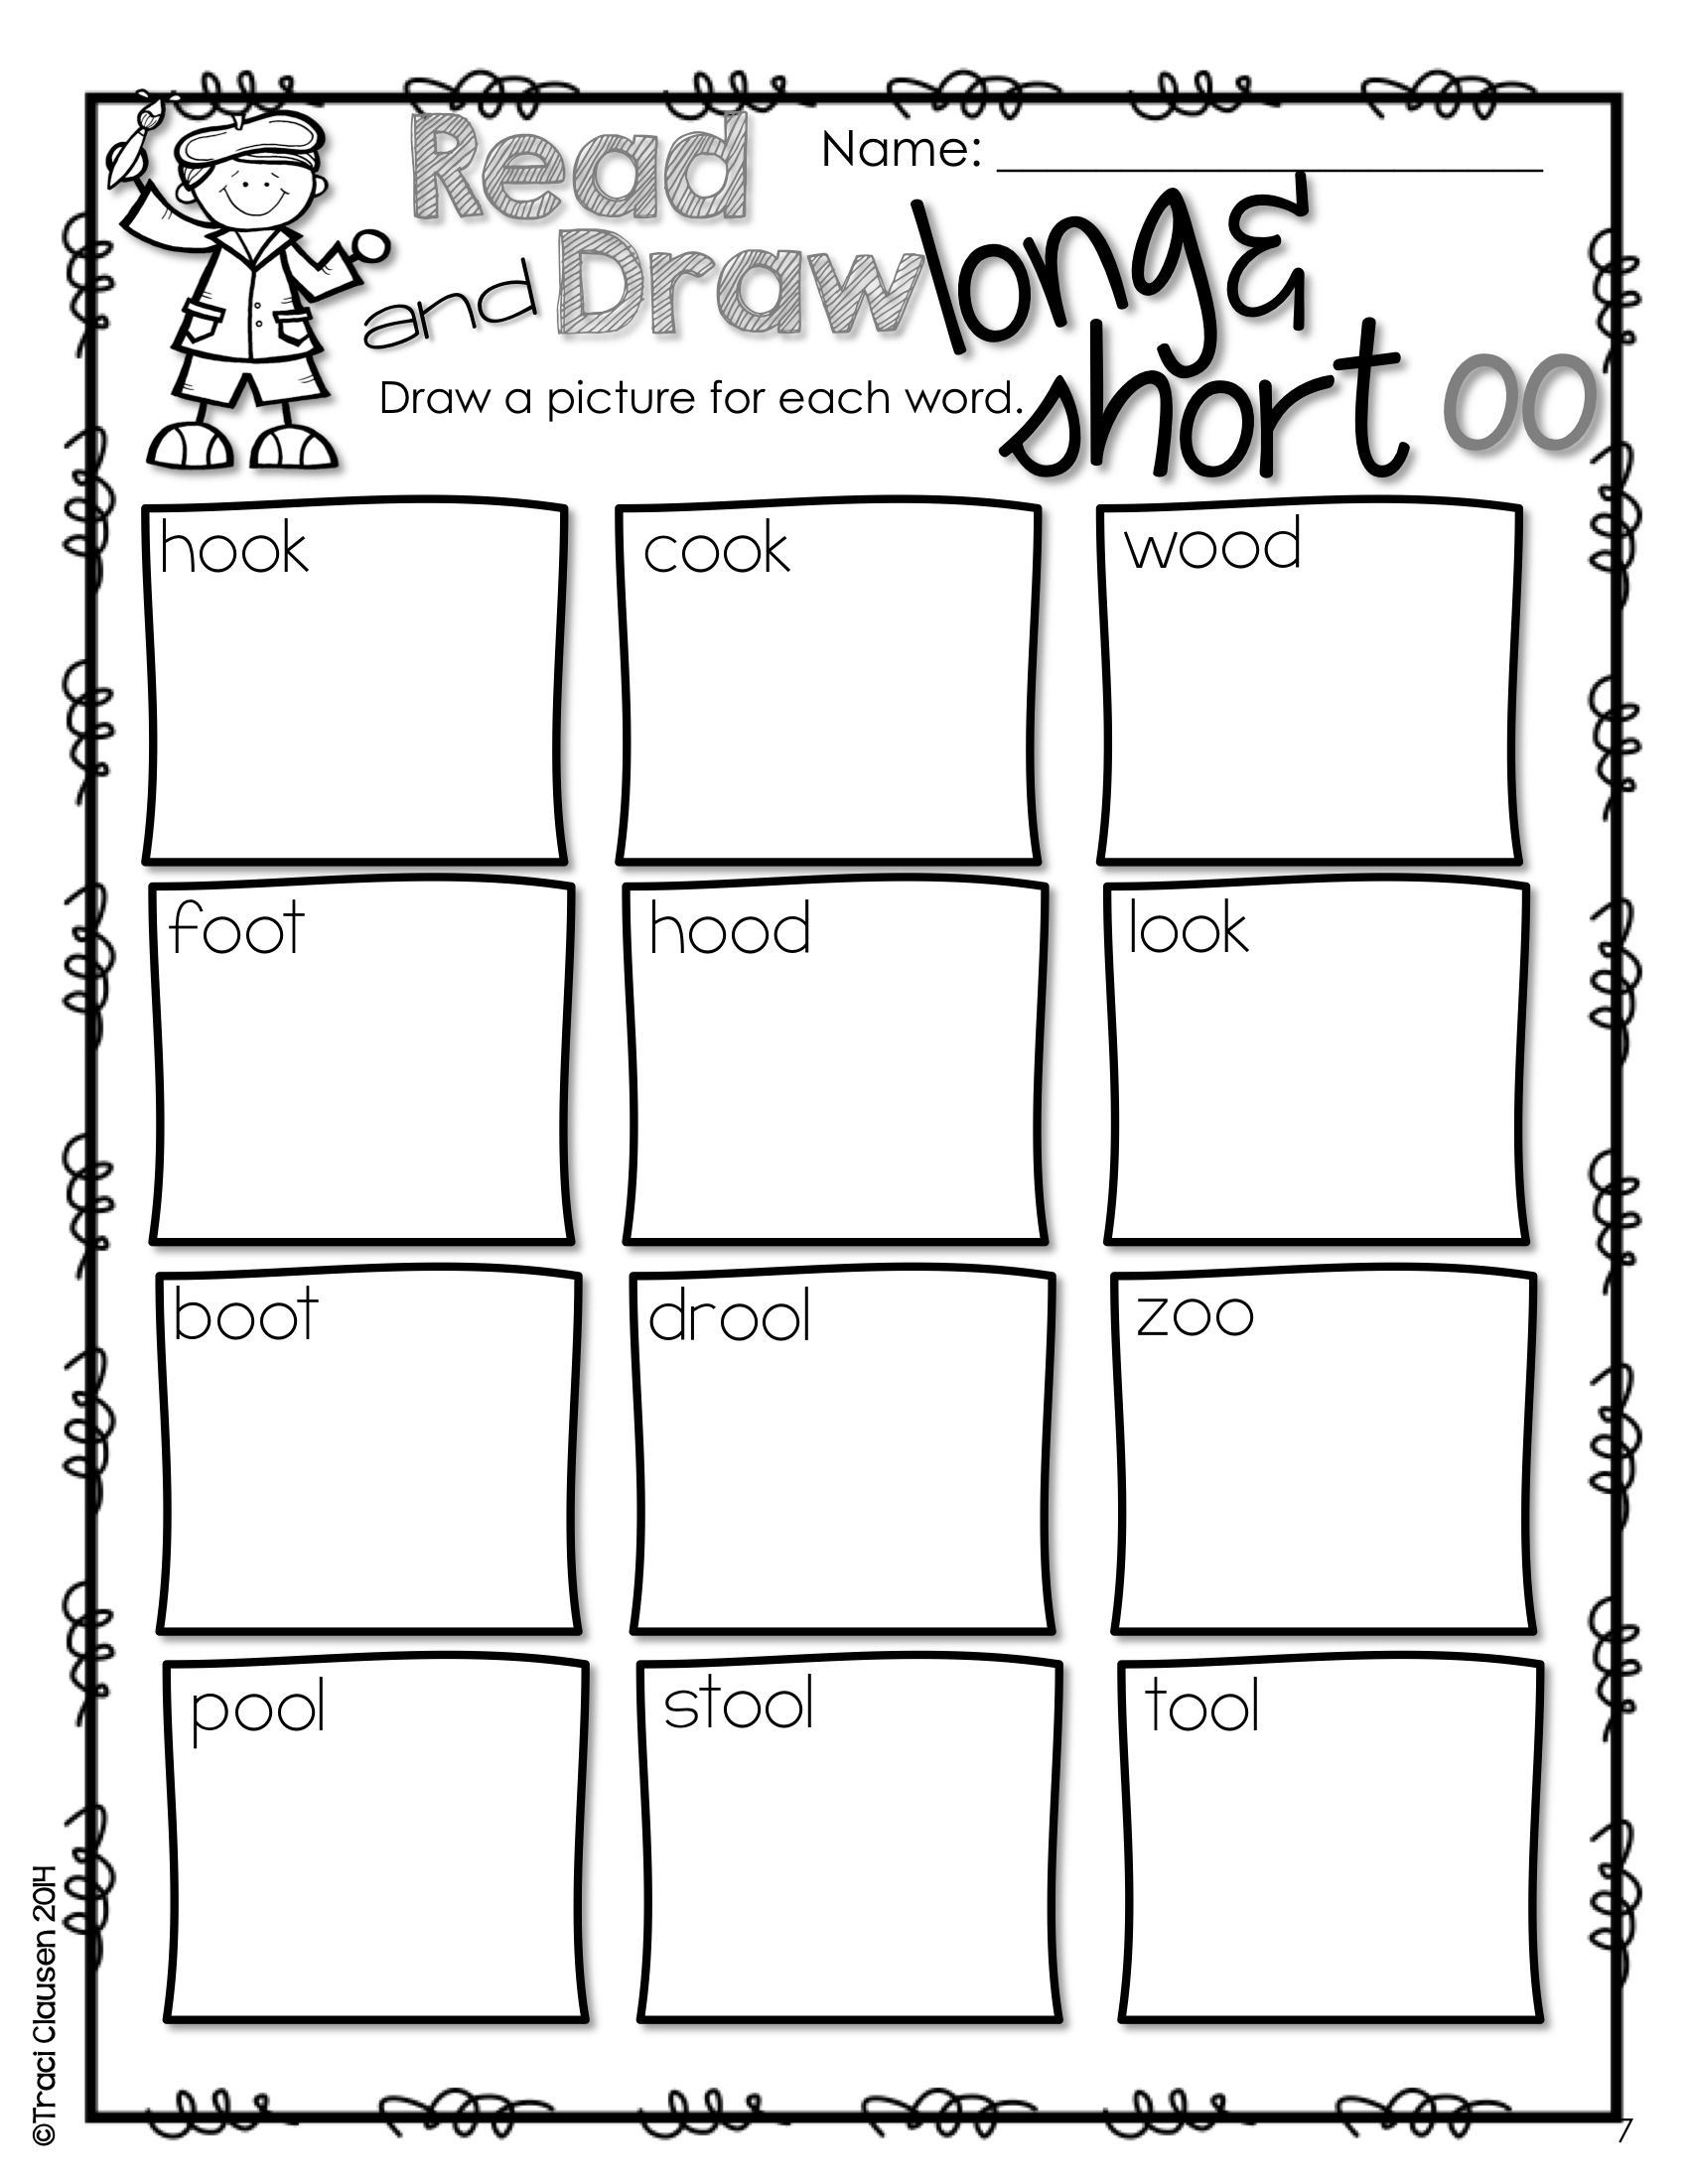 Reading Vowels Phonics Activities And Games Bossy R And The Diphthongs Phonics First Grade Phonics Phonics Printables